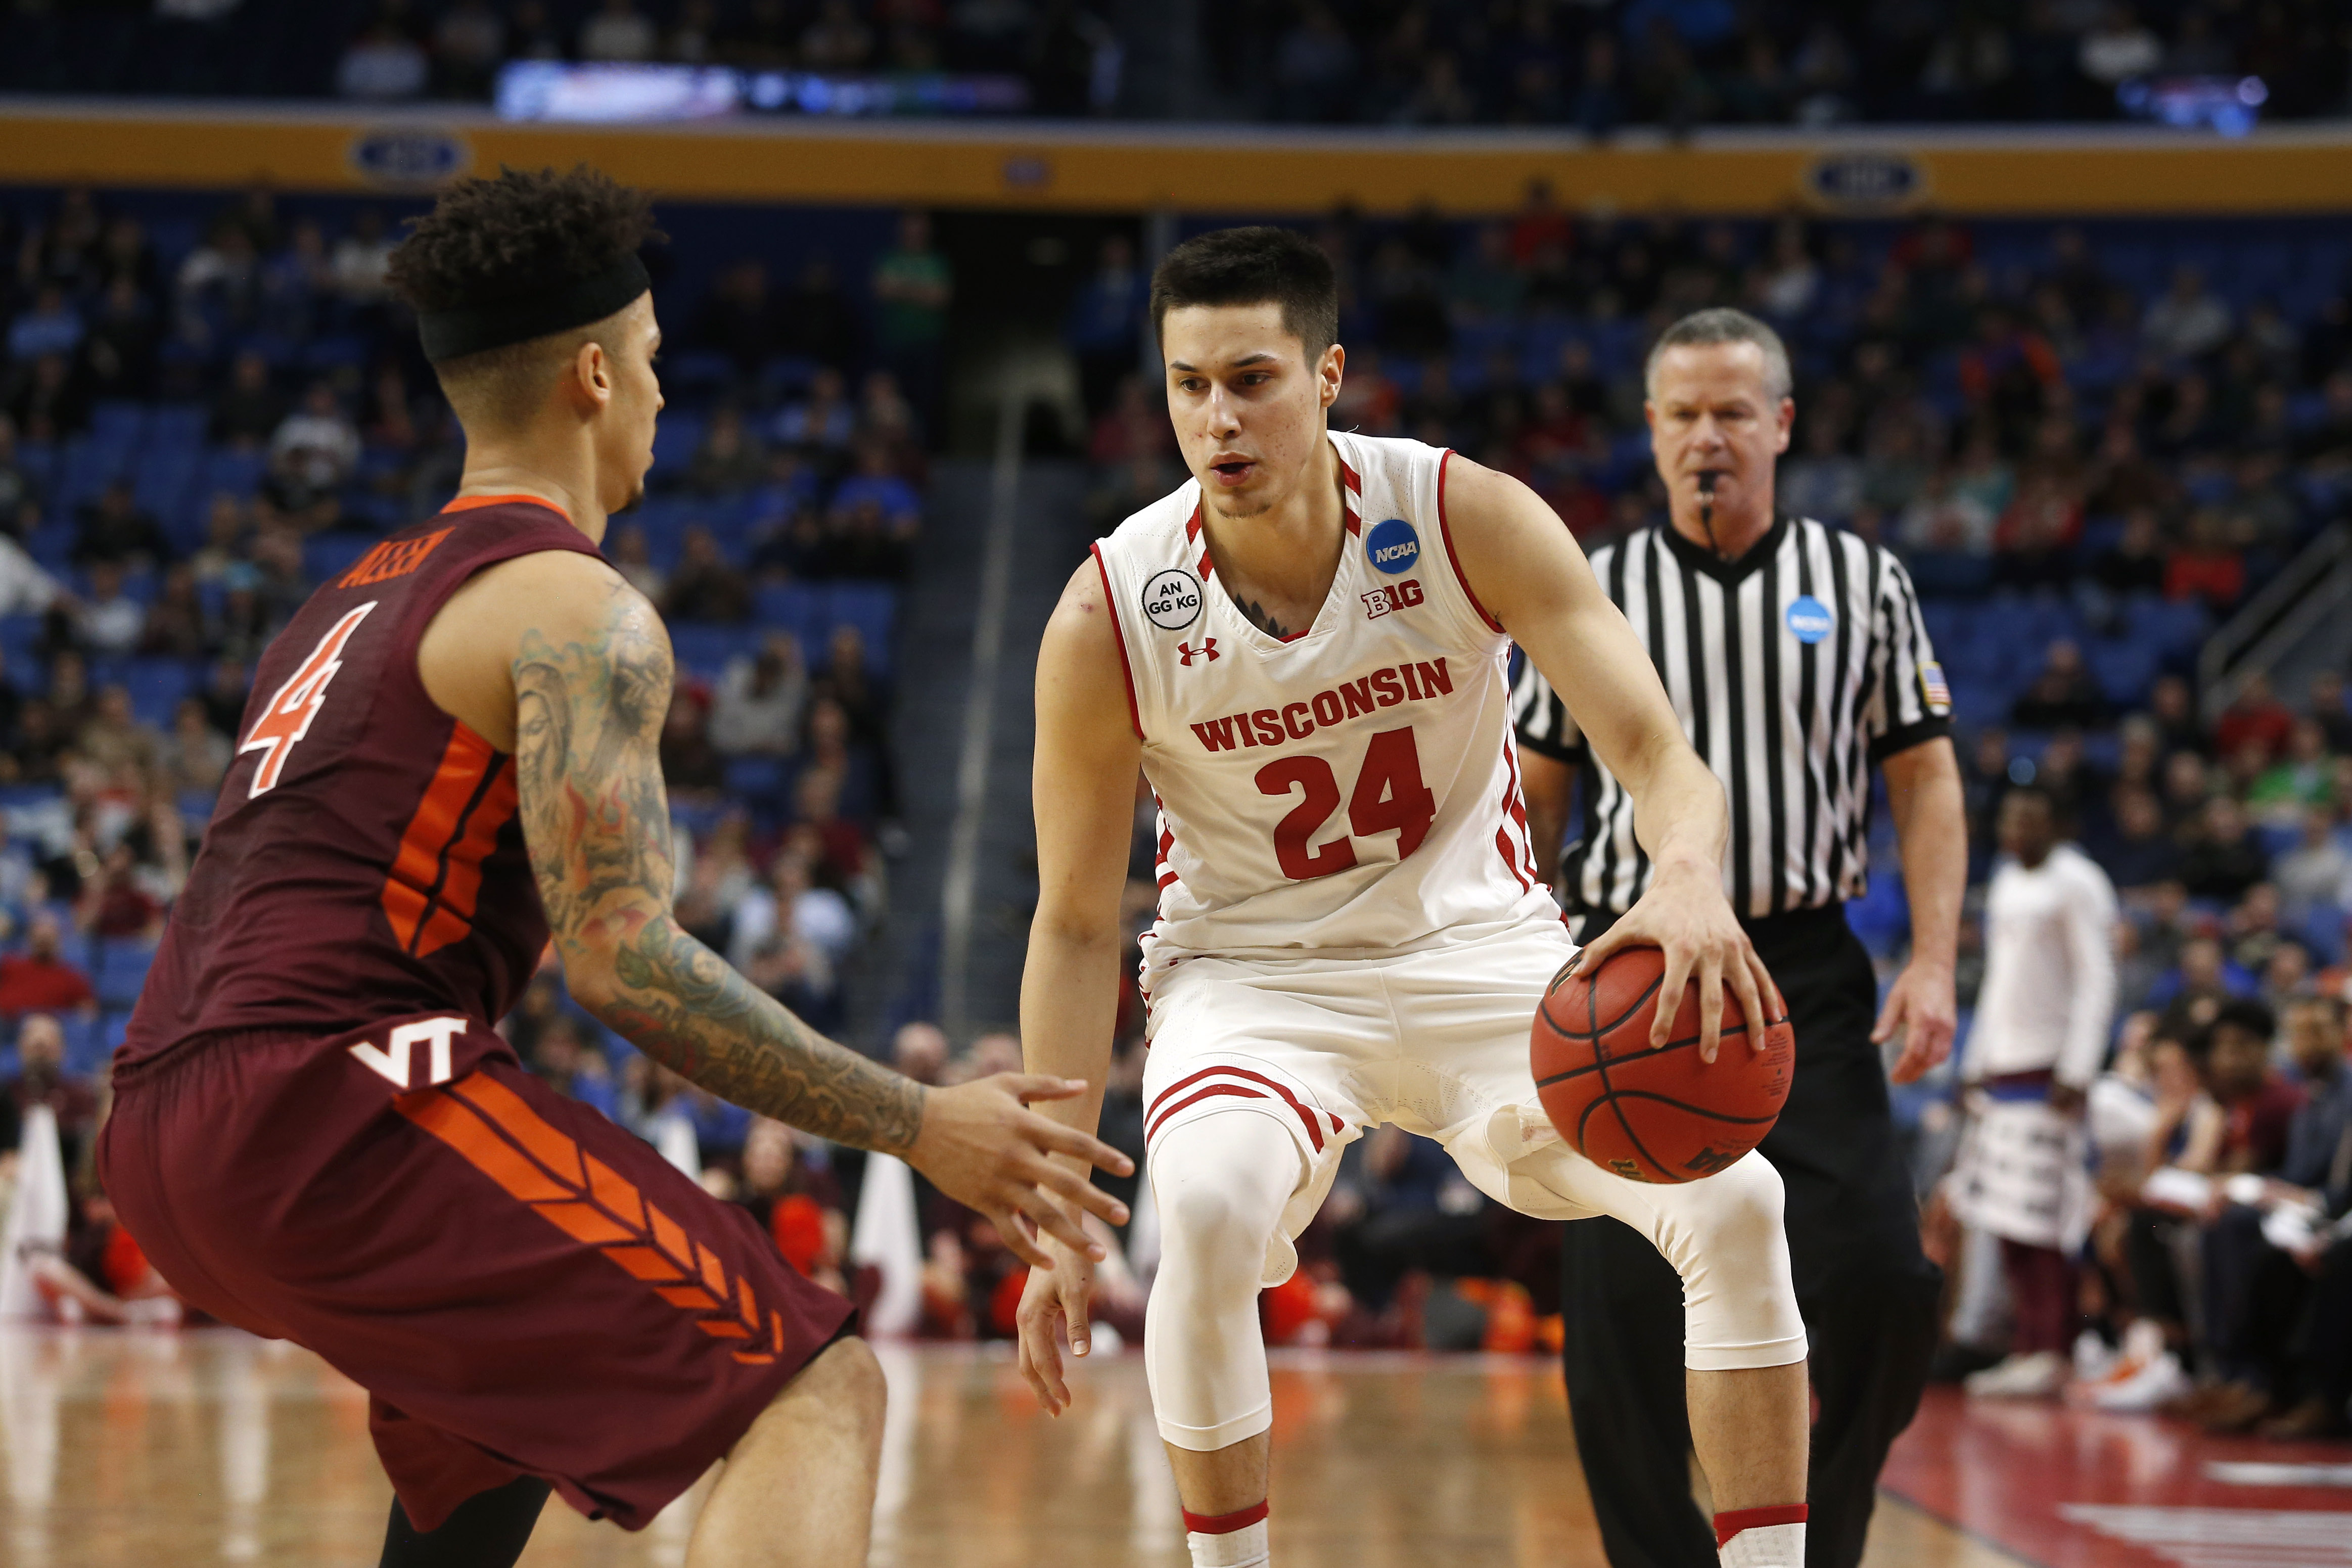 9949061-ncaa-basketball-ncaa-tournament-first-round-virginia-tech-vs-wisconsin